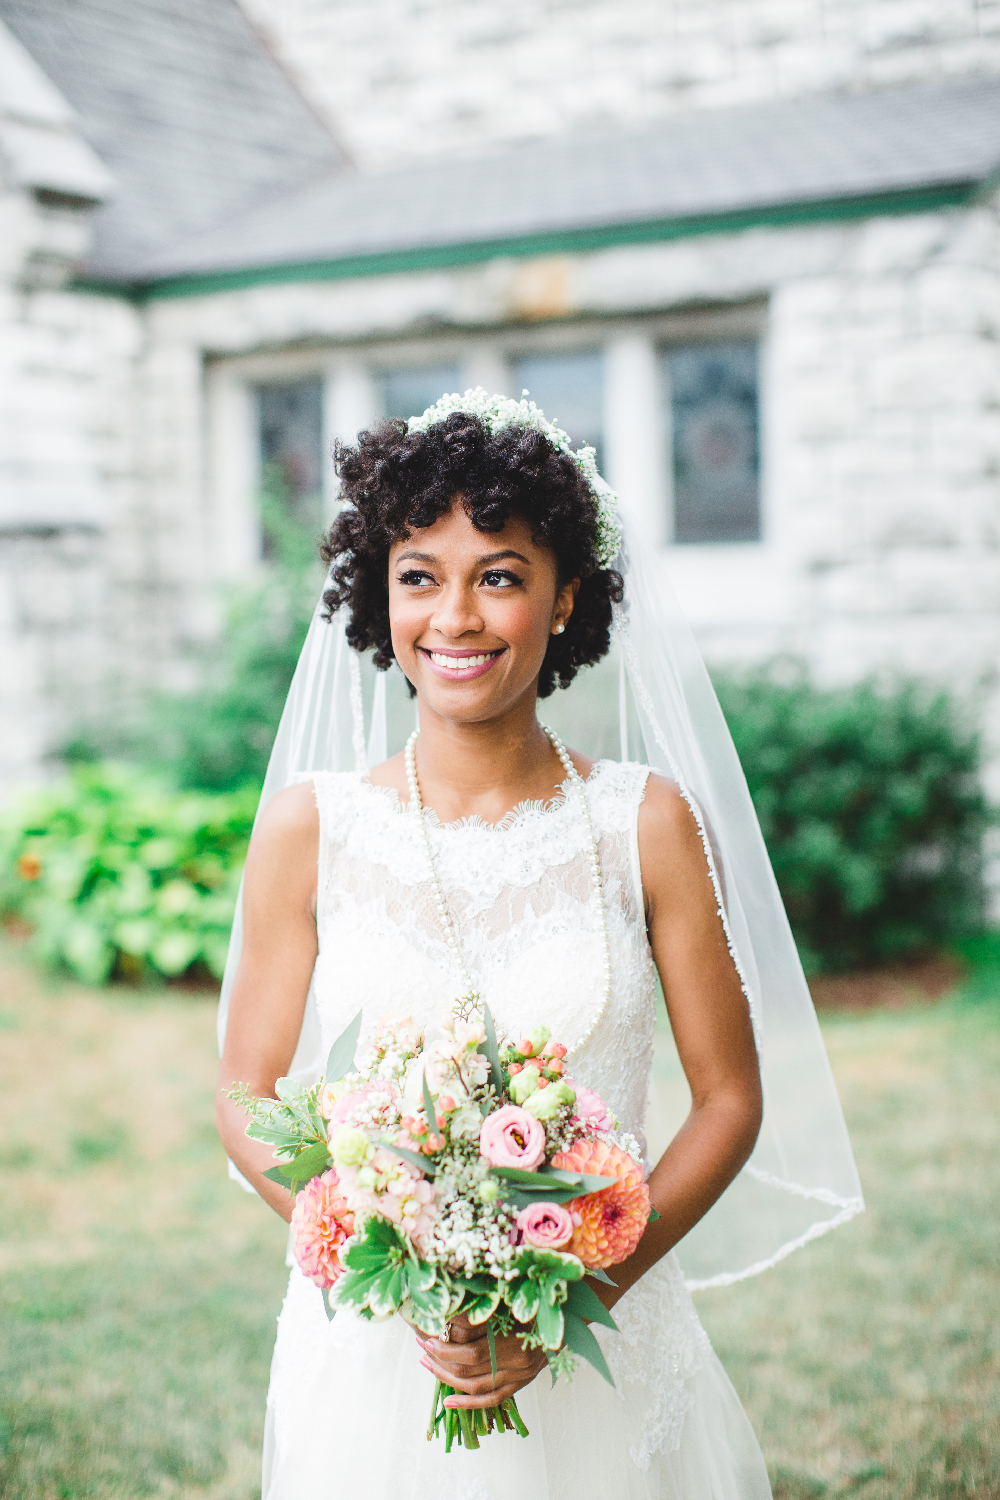 Natural Hair Bride Savannah Georgia Wedding Button Wood Grove Winery Izzy Hudgins Photography